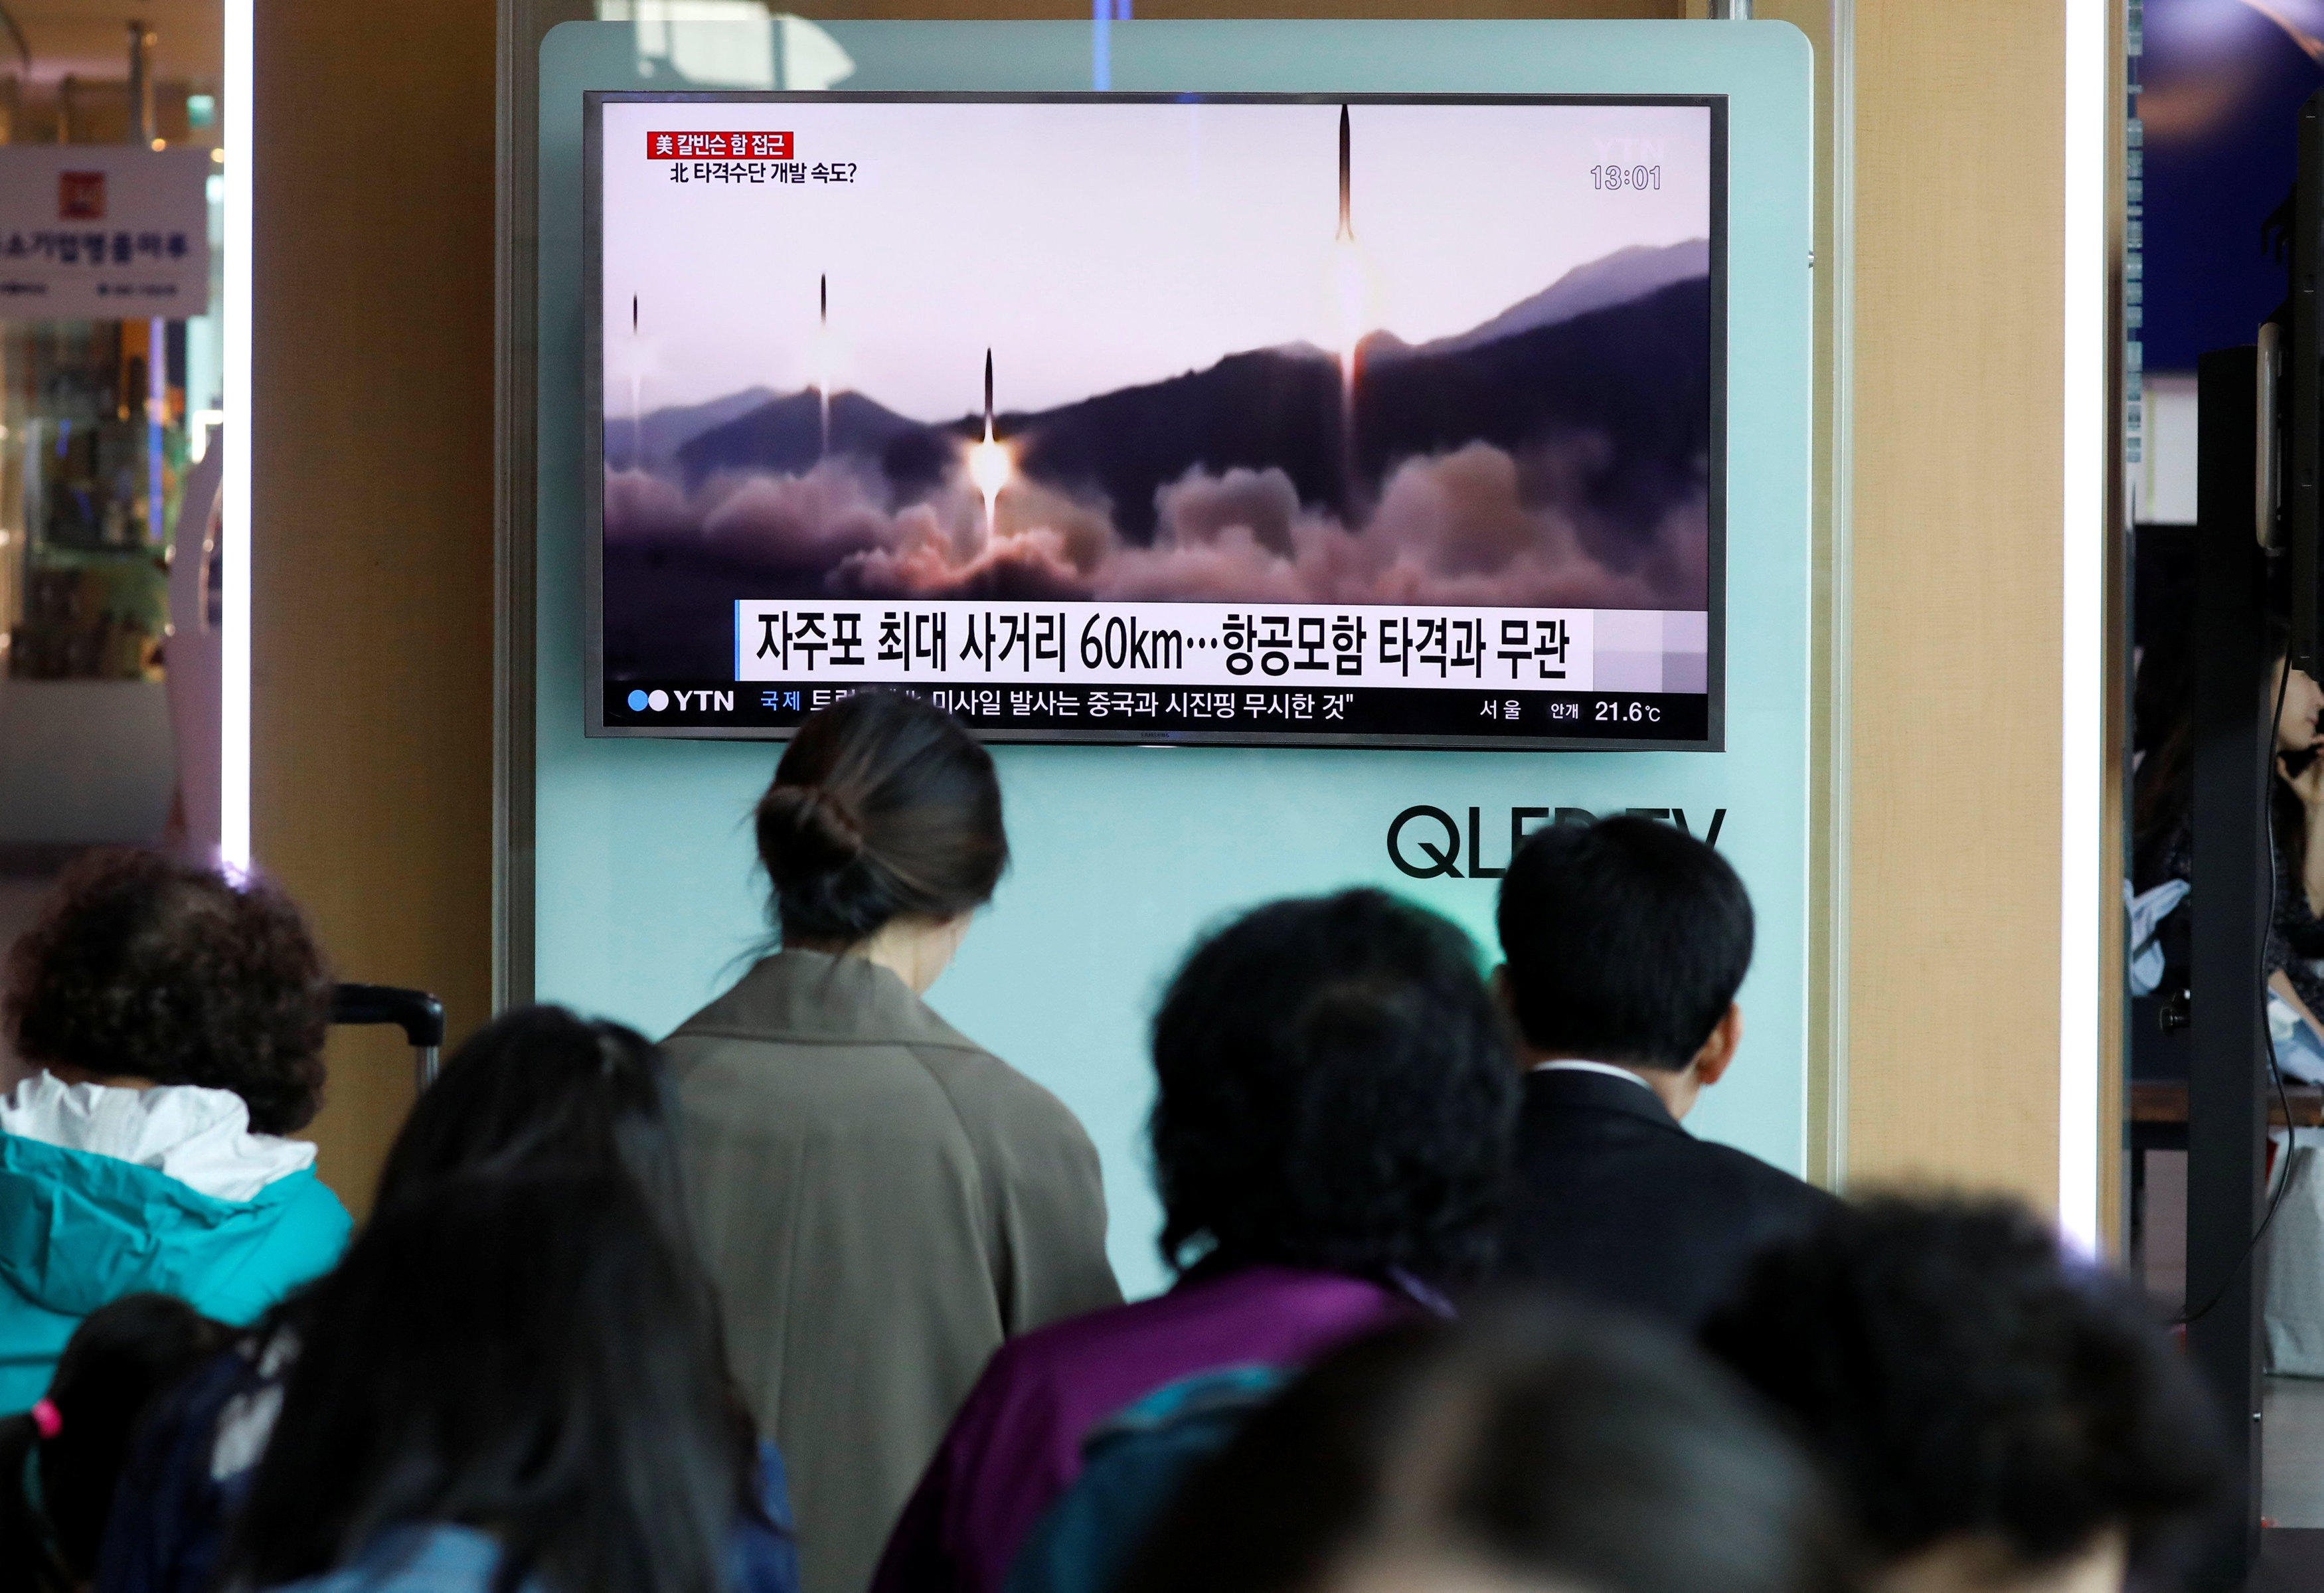 People watch a TV broadcasting of a news report on North Korea's missile launch, at a railway station in Seoul, South Korea.